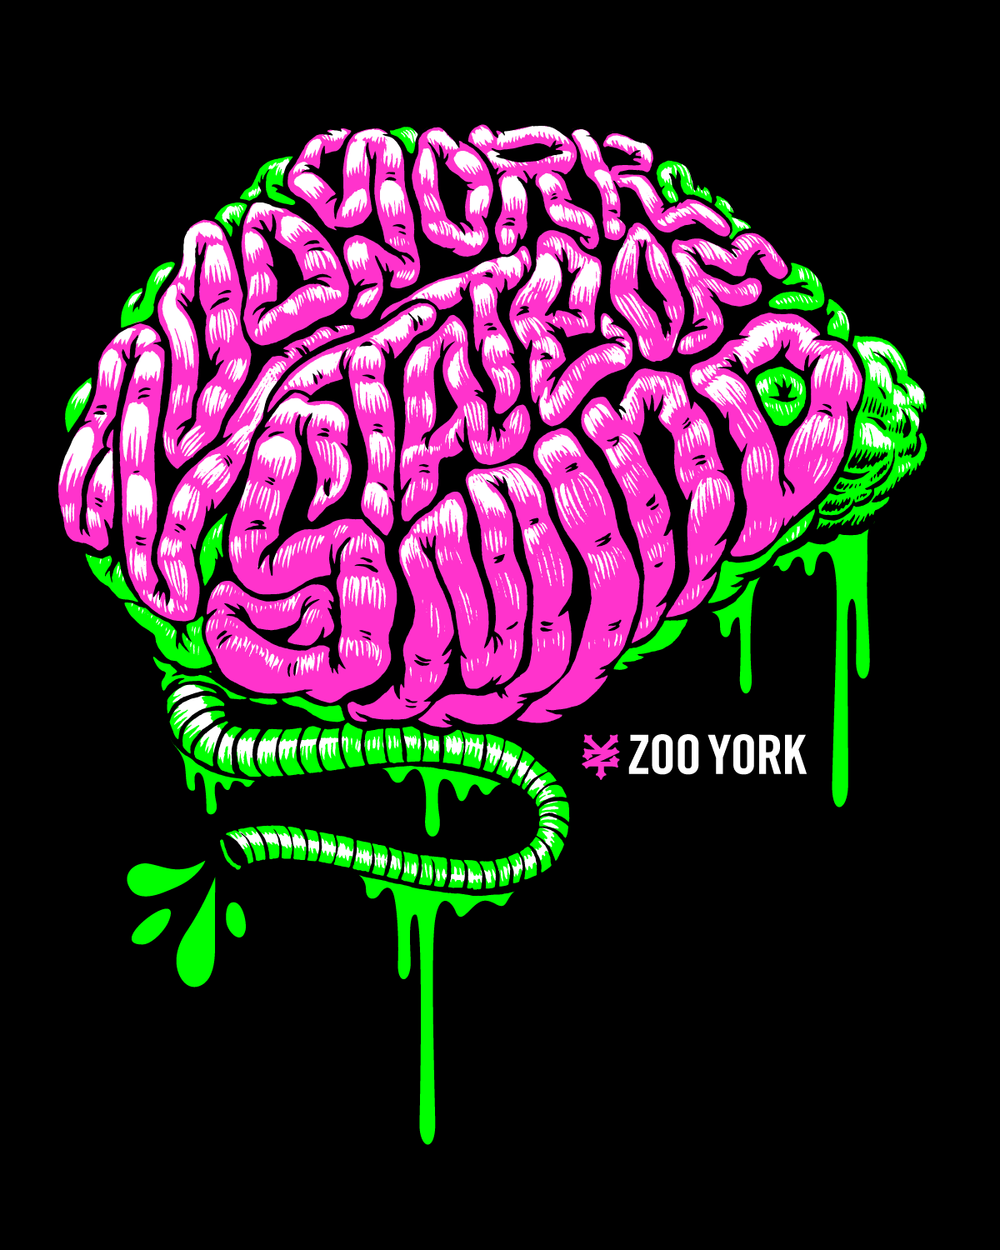 Apparel Design, Illustration for Zoo York